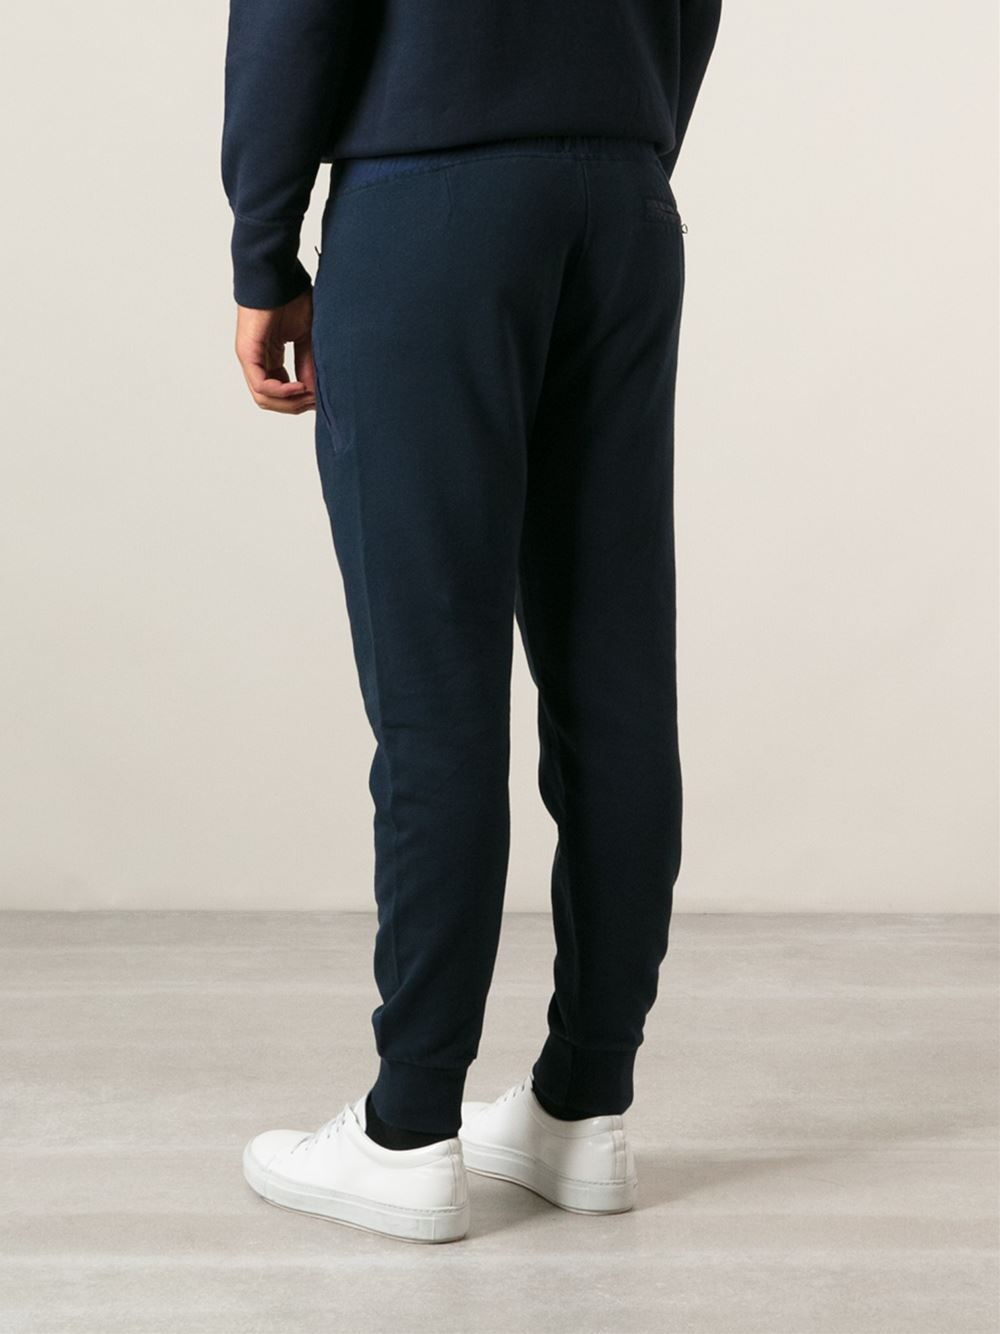 acne track pants